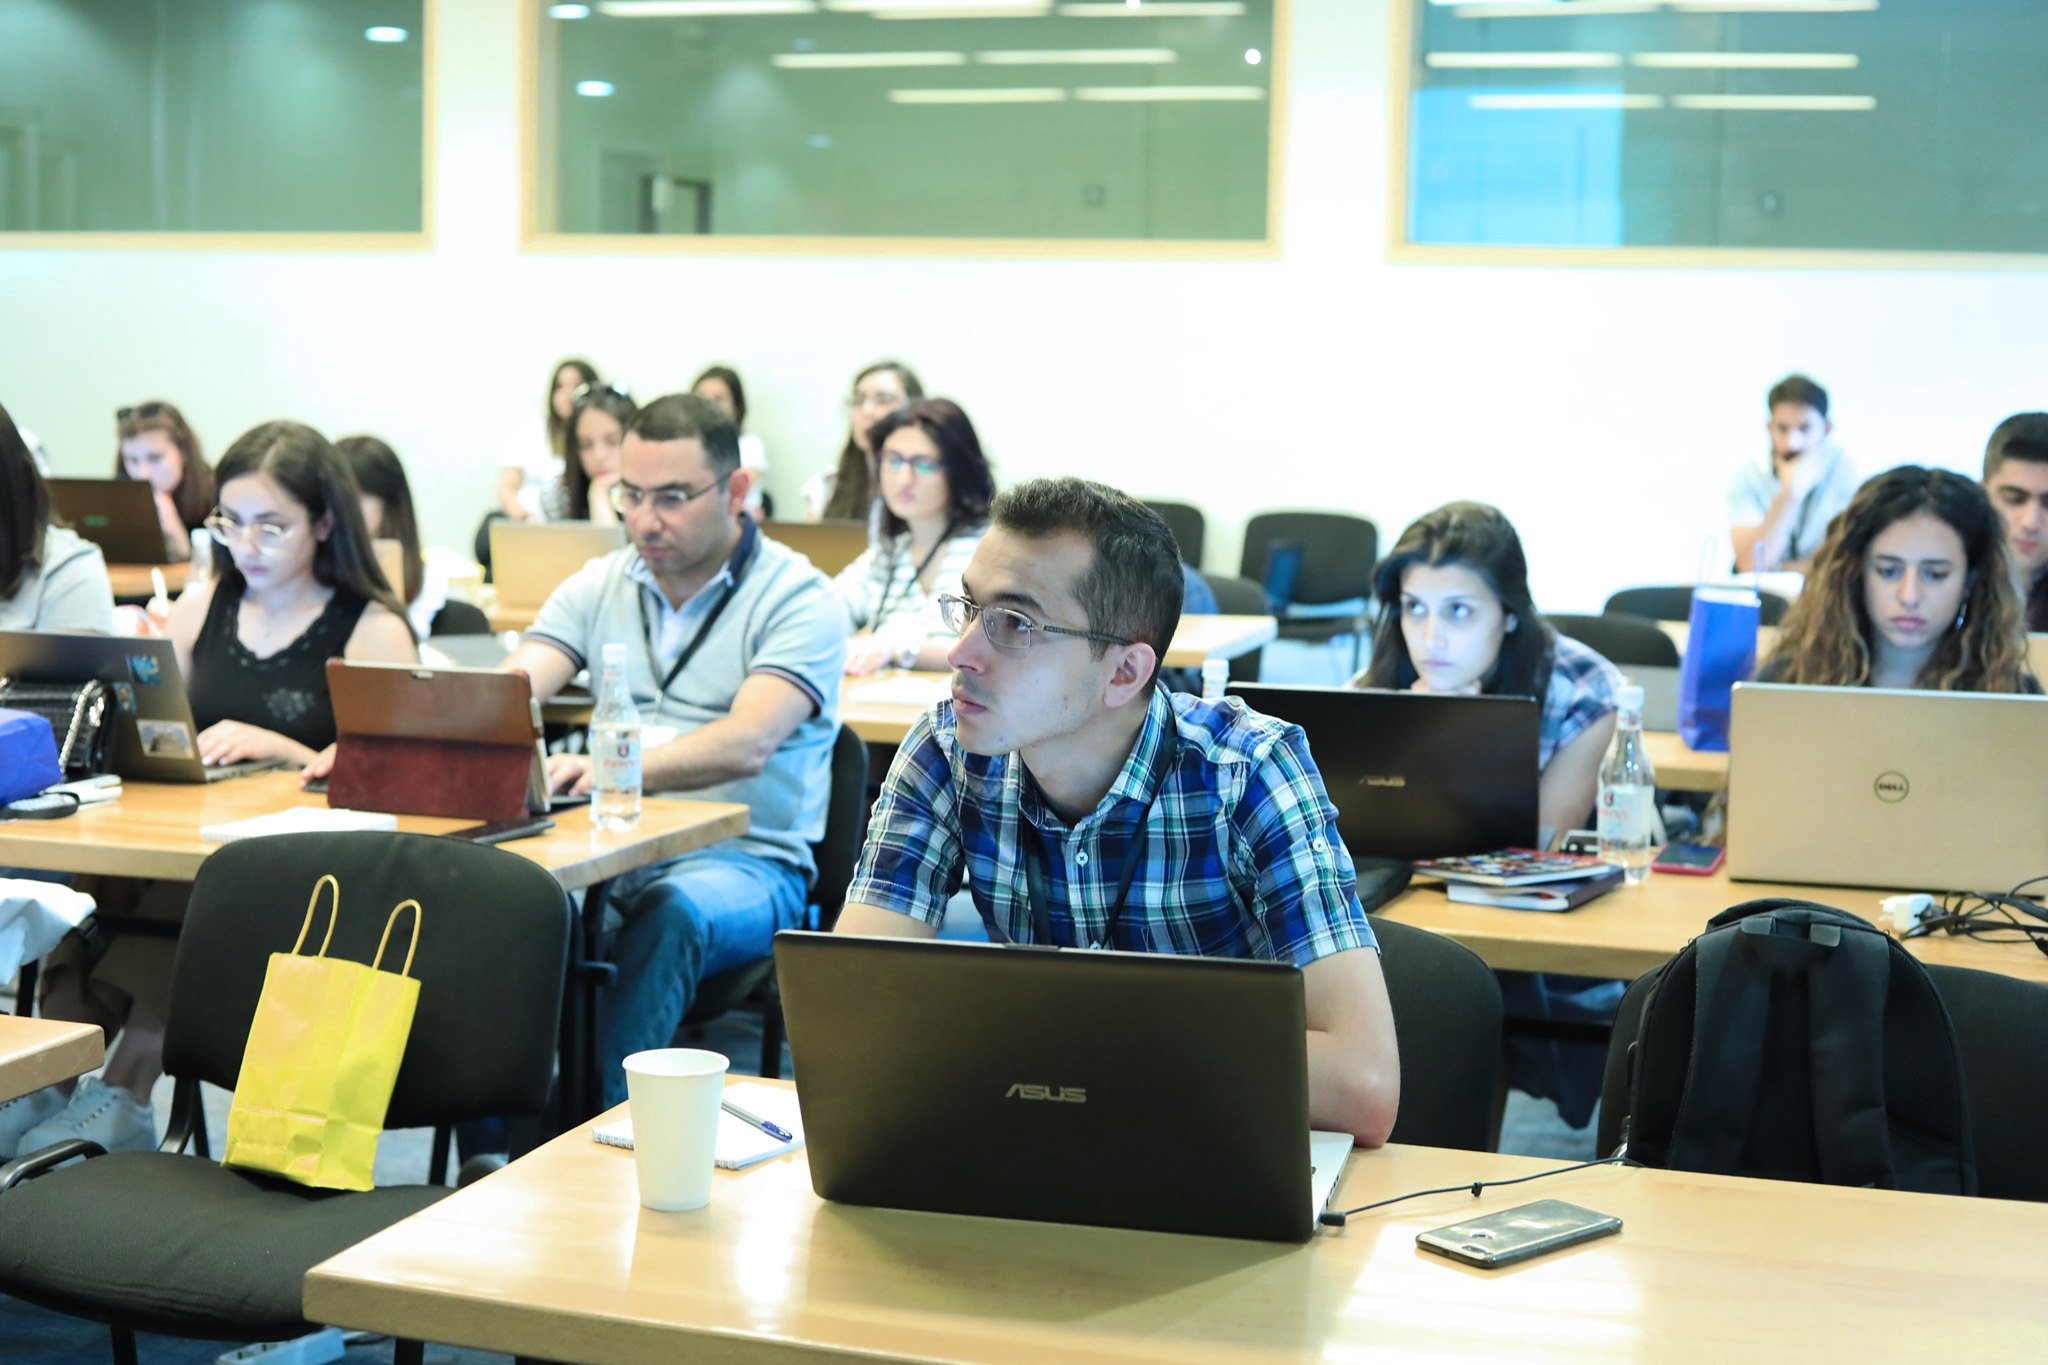 With the help of Webb Fontaine launched an unprecedented Summer School of Data Science in Armenia